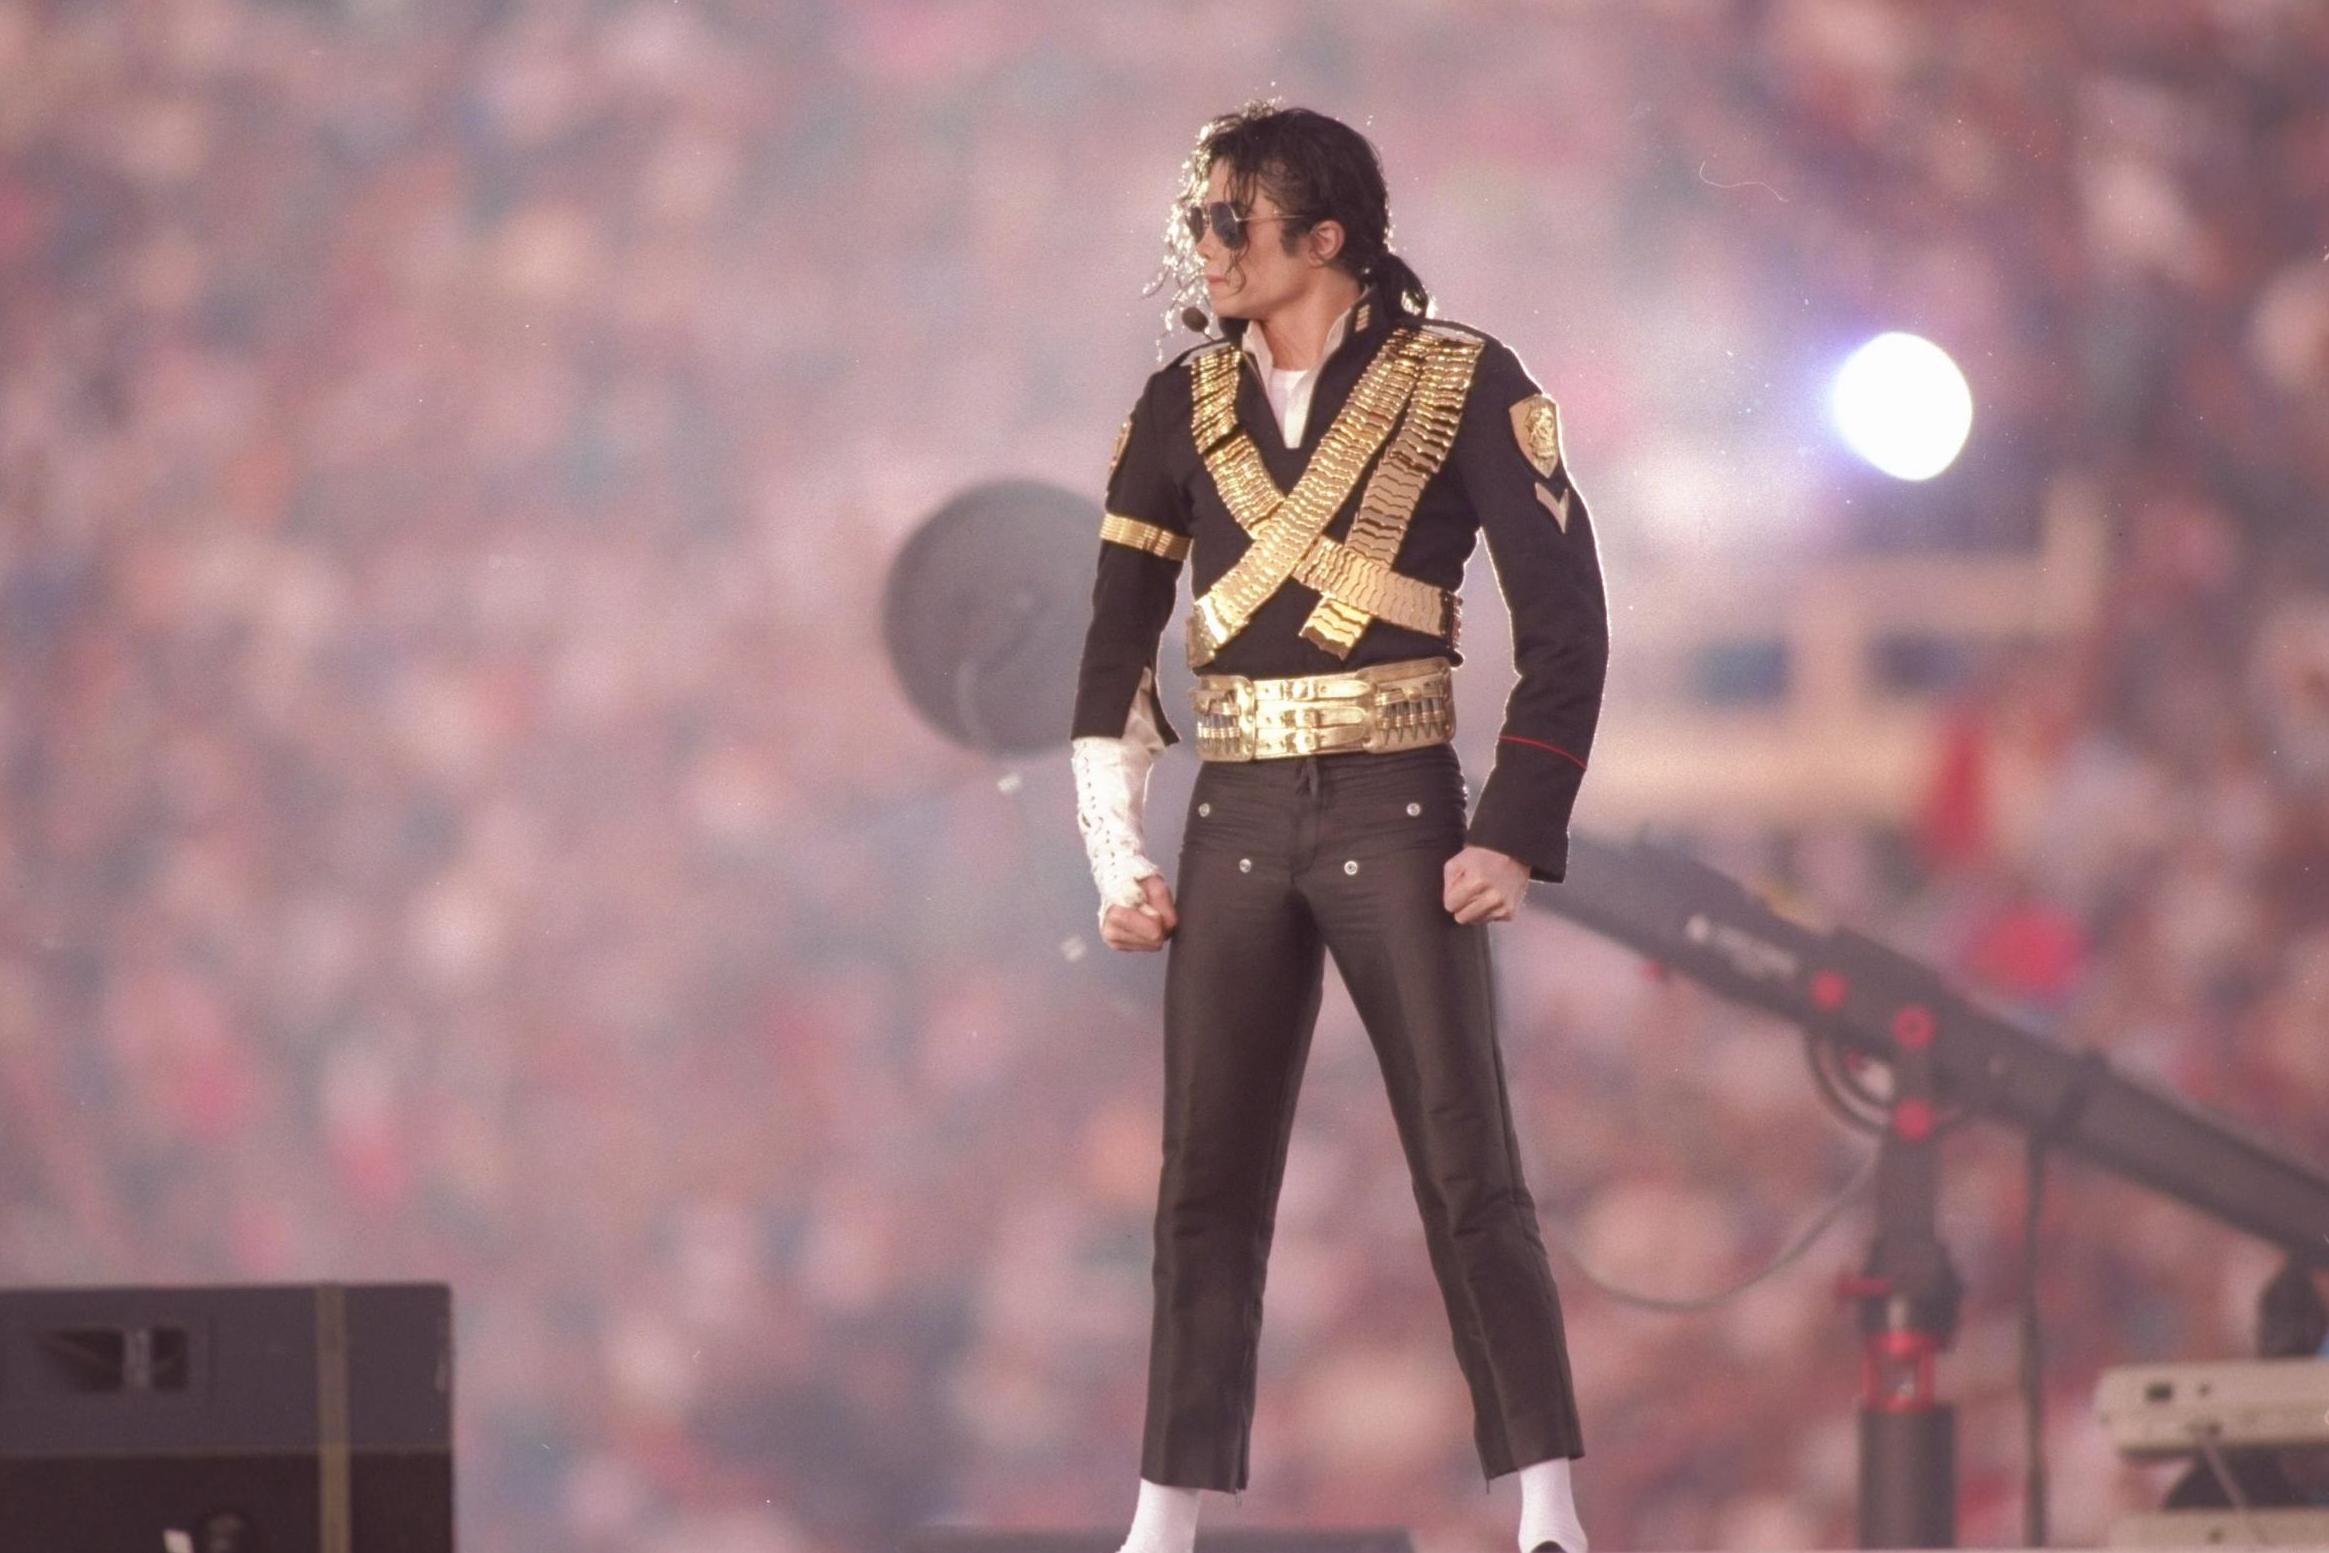 Socks worn by Michael Jackson during his first moonwalk expected to fetch $1m at auction